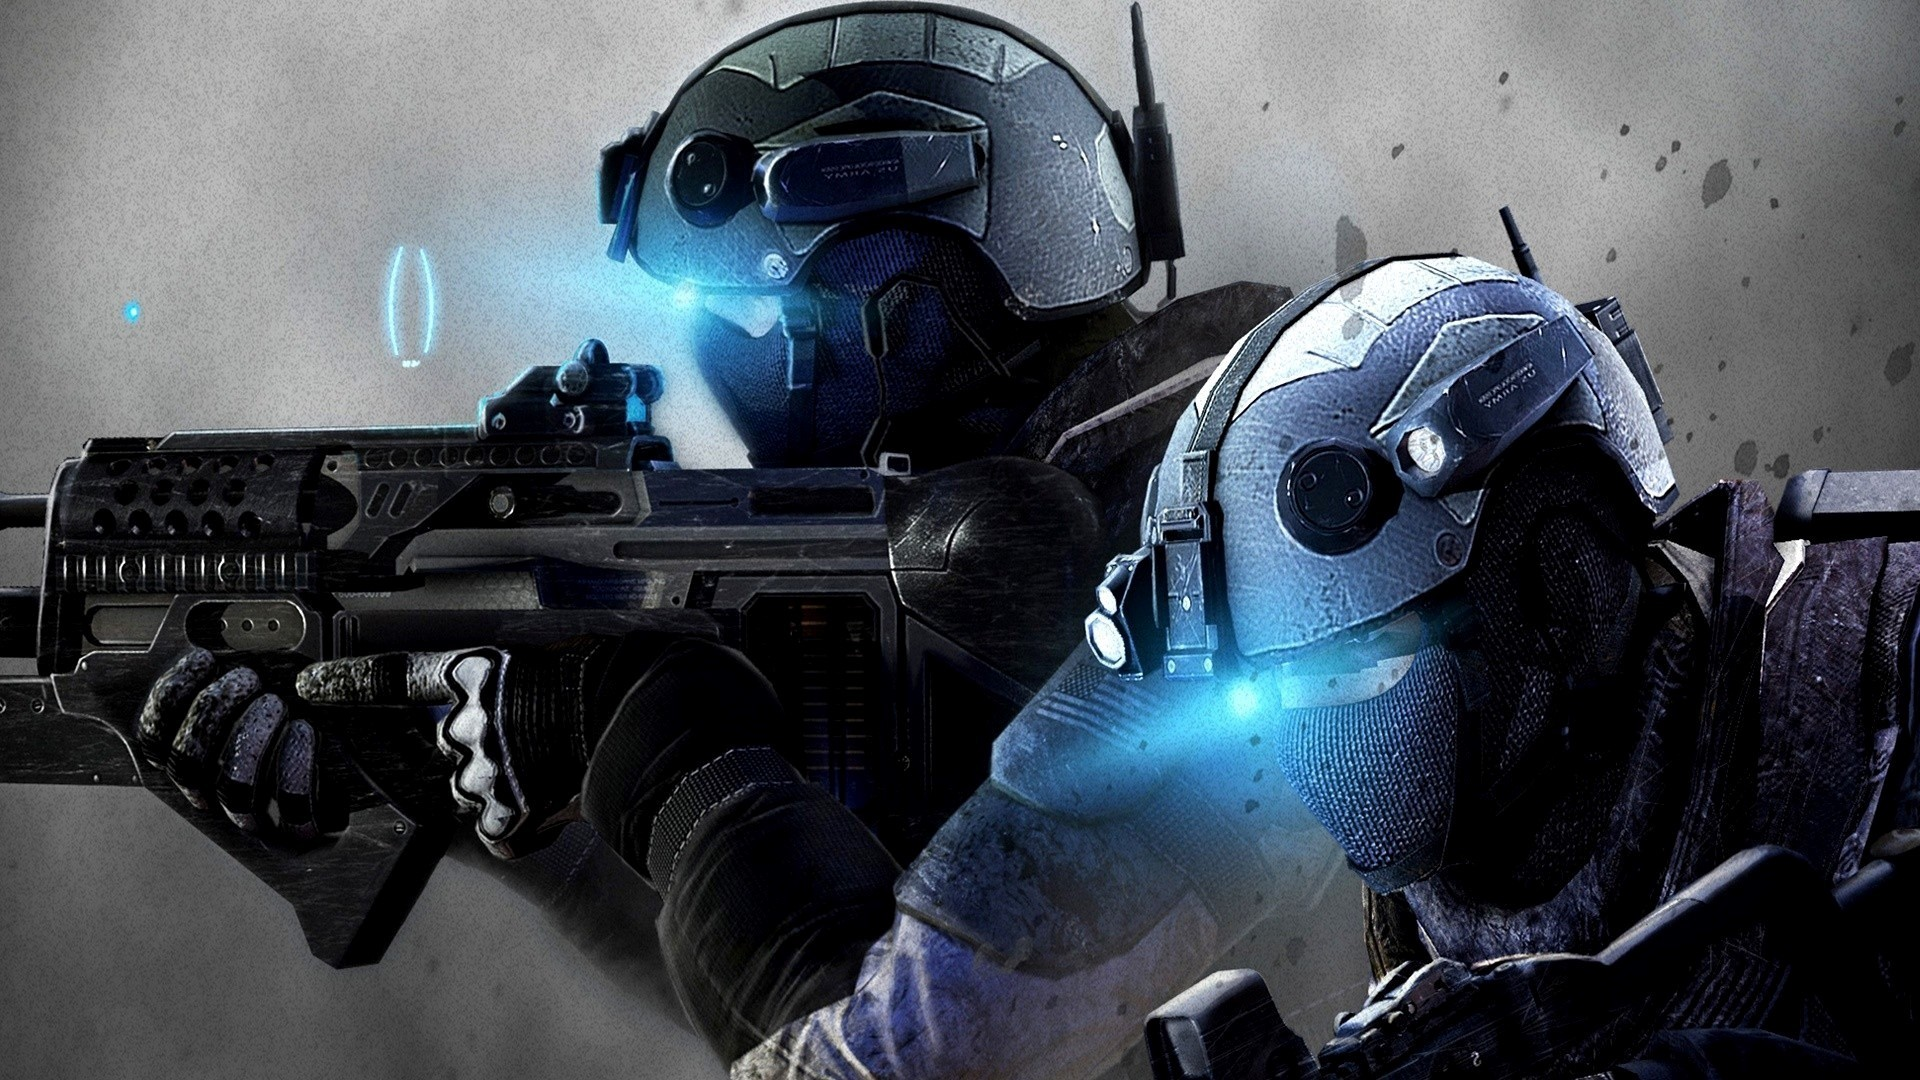 Soldier Action Game Wallpaper   HD Wallpapers